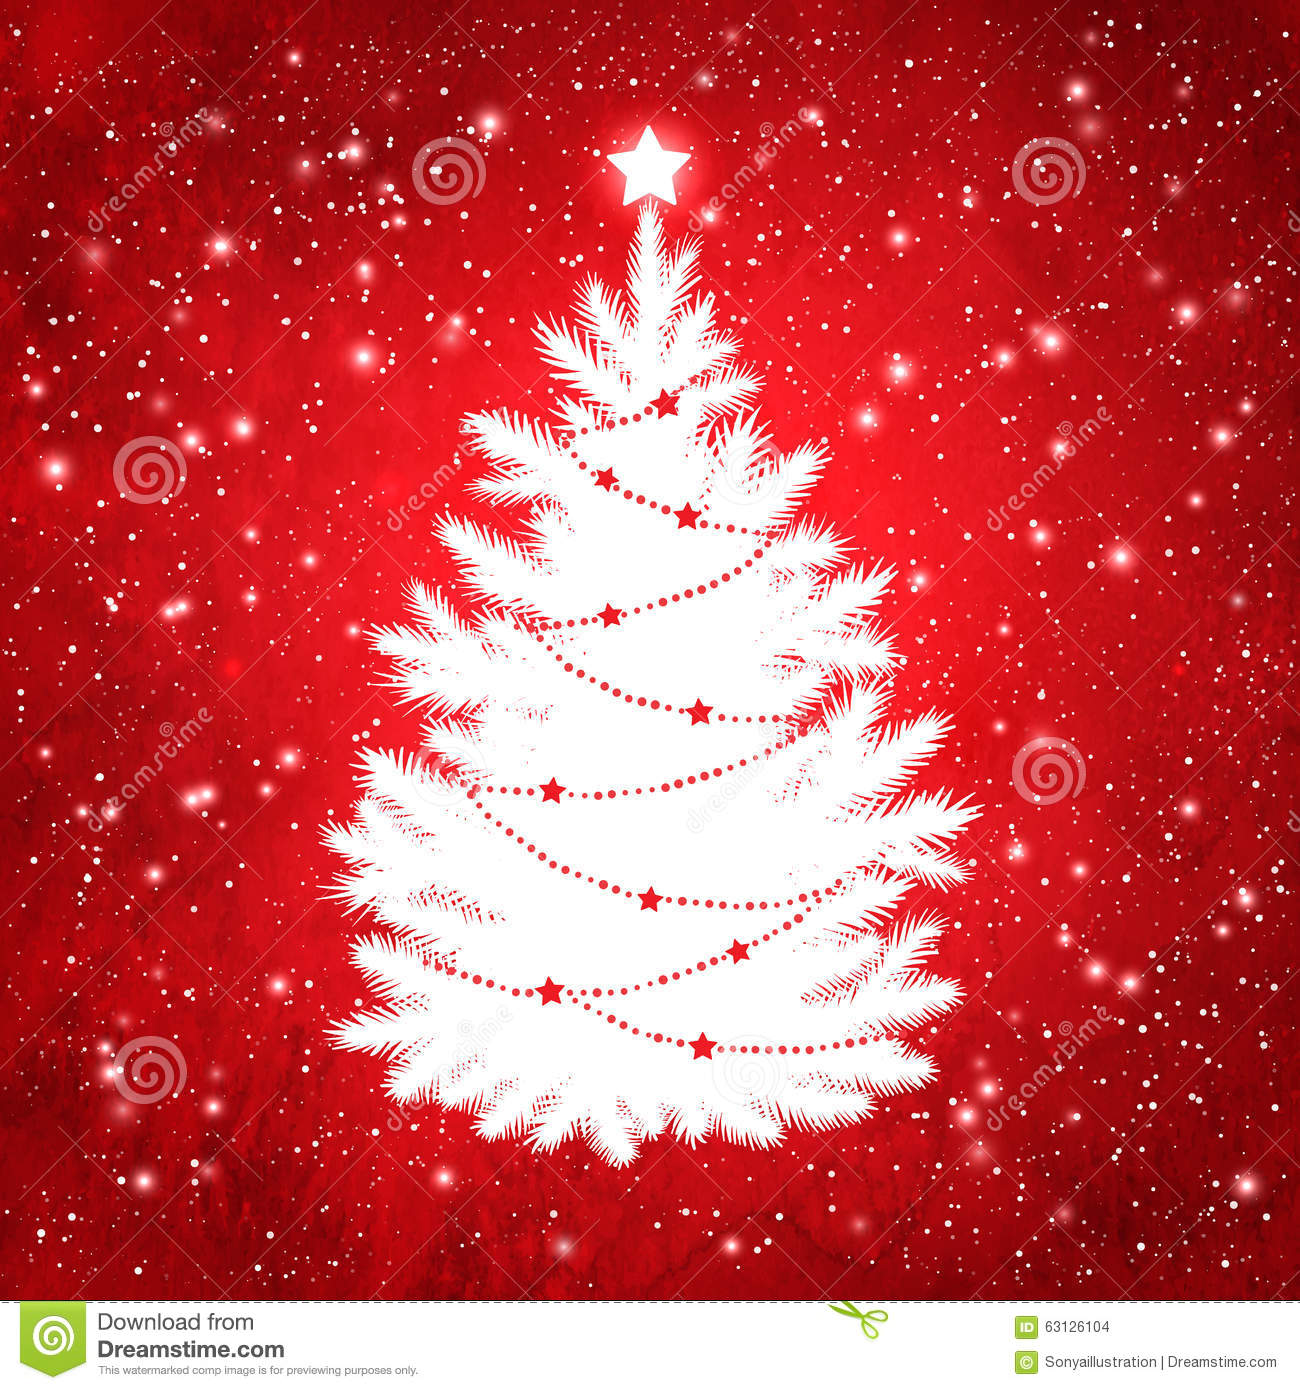 White Silhouette Of Christmas Tree Stock Vector - Image ... Red Christmas Tree White Background